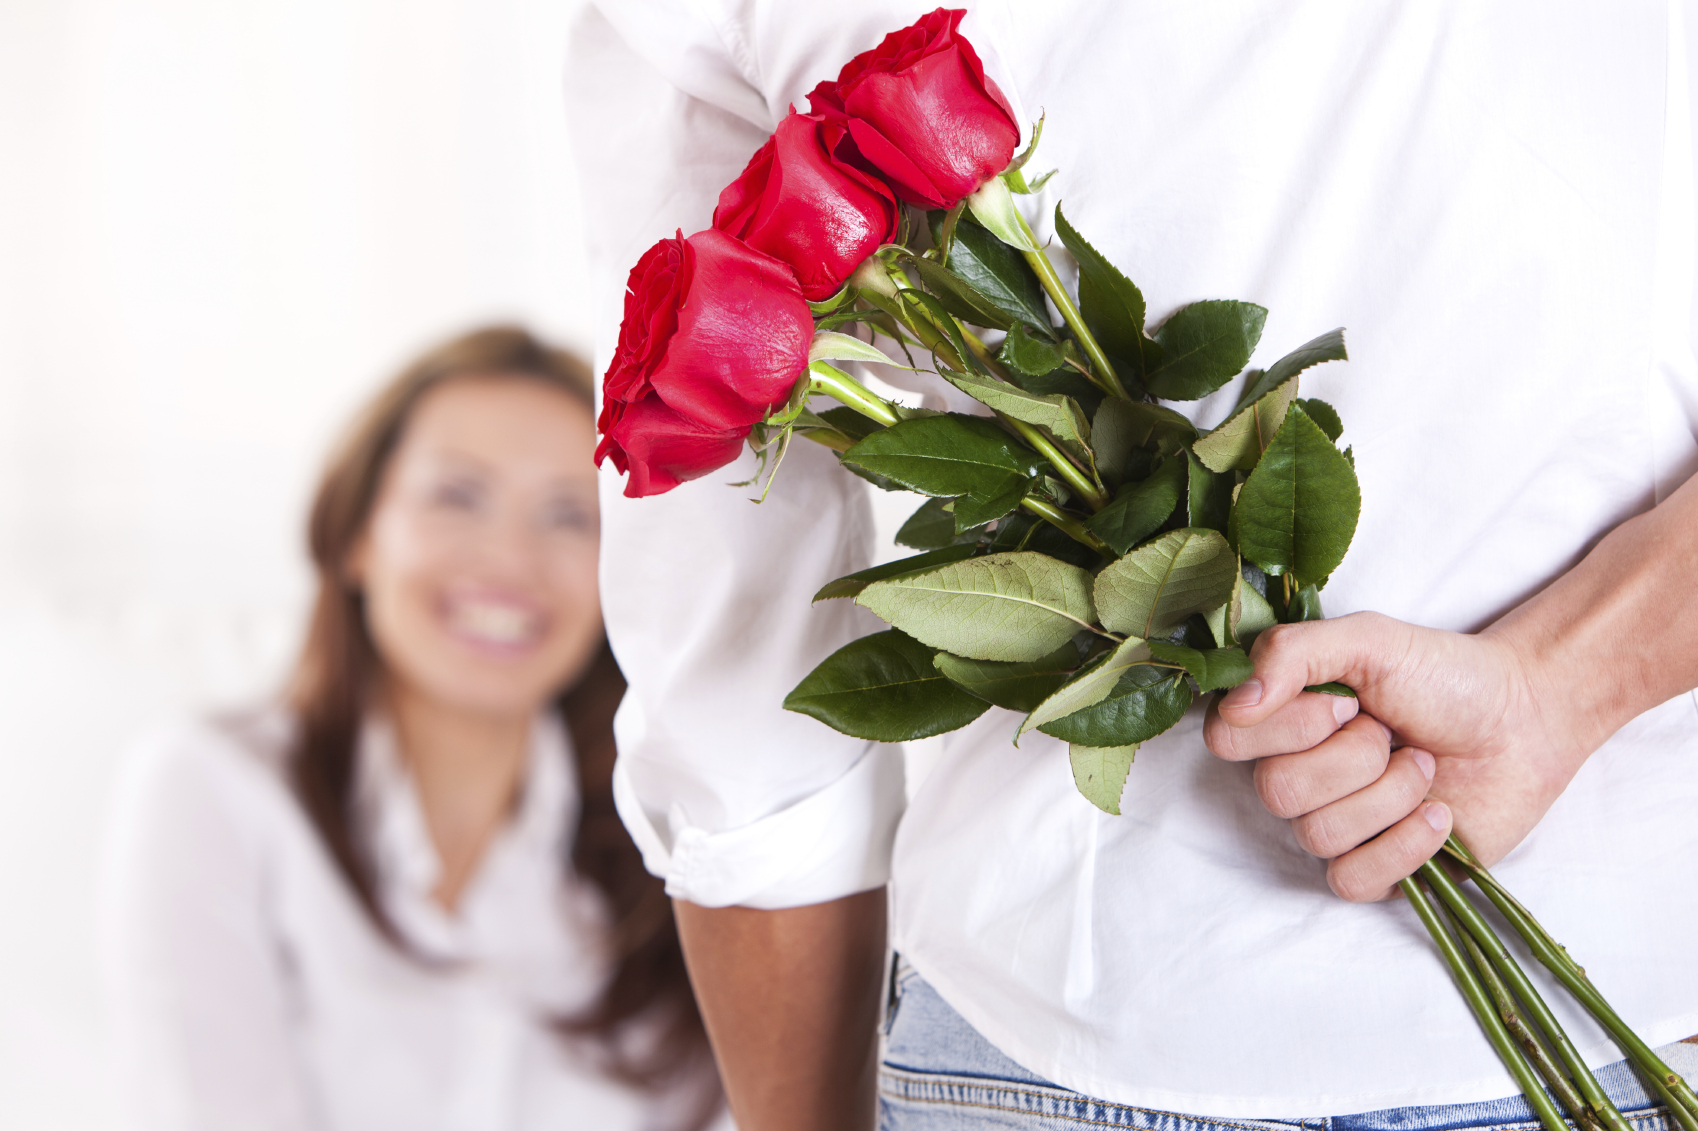 dating giving flowers On your first date do you want flowers if yes why if no why also, what do you think about your date if he does give you flowers it depends if you've known each other as friends for a long time and are just taking asked under dating.